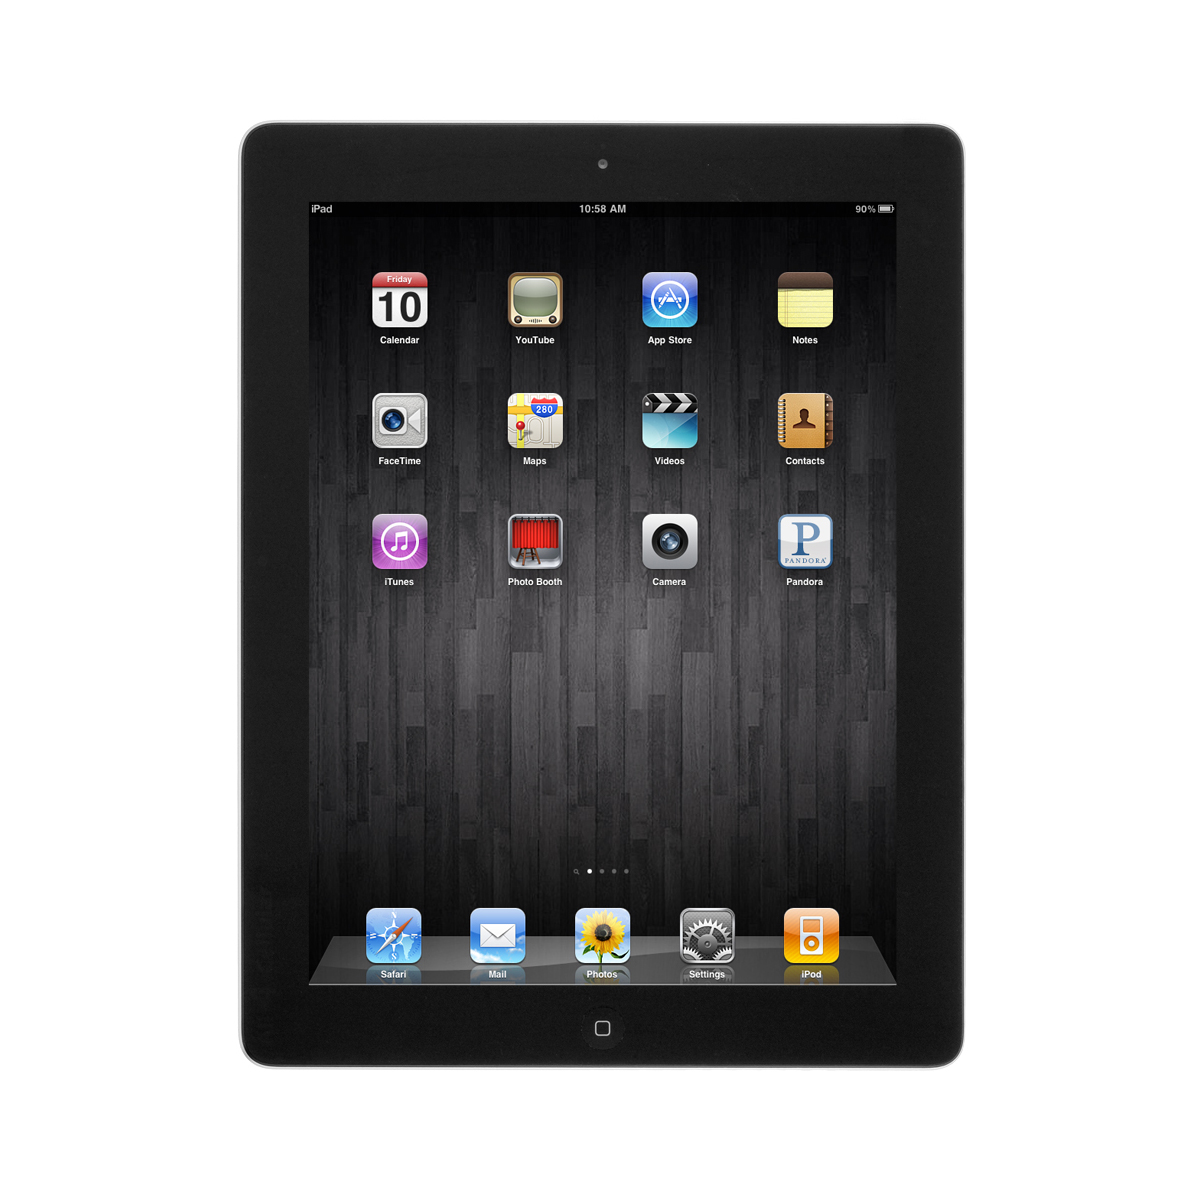 "Refurbished Apple iPad 4 16GB 9.7"" Retina Display Tablet WiFi Bluetooth & Camera - Black"